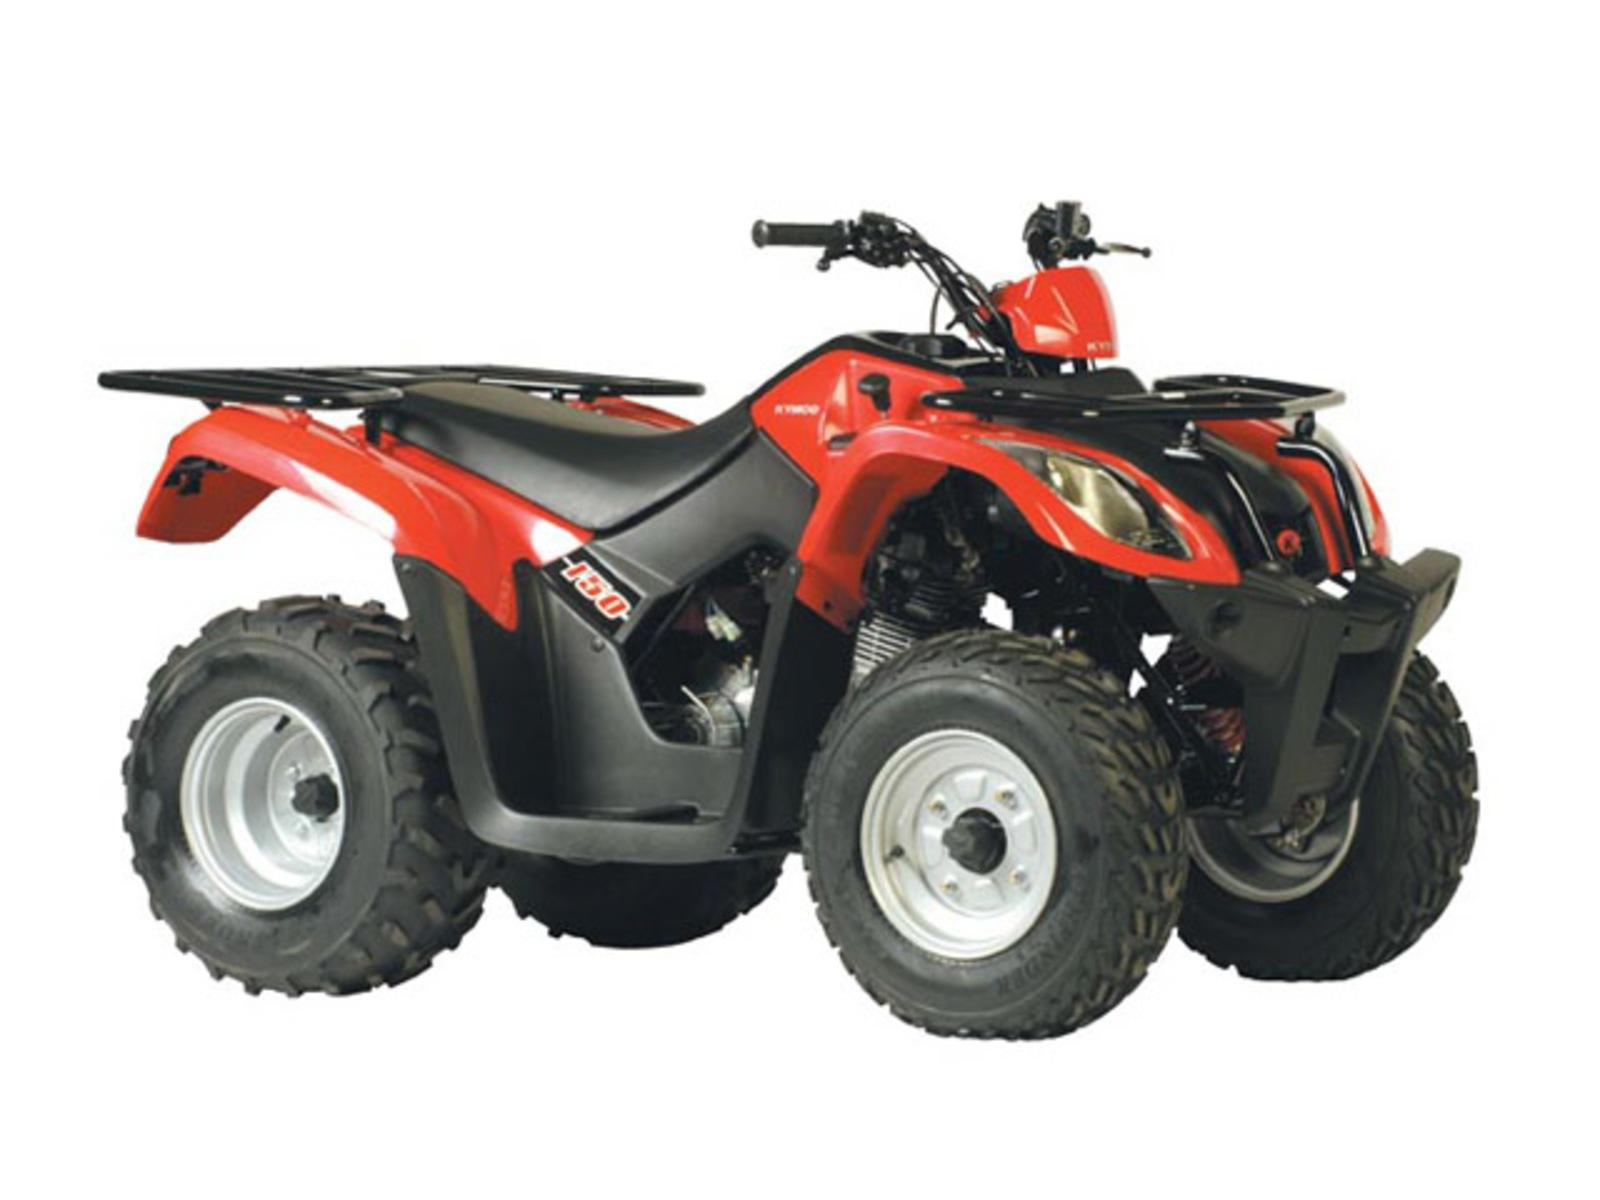 2014 kymco mxu 150 review gallery top speed. Black Bedroom Furniture Sets. Home Design Ideas